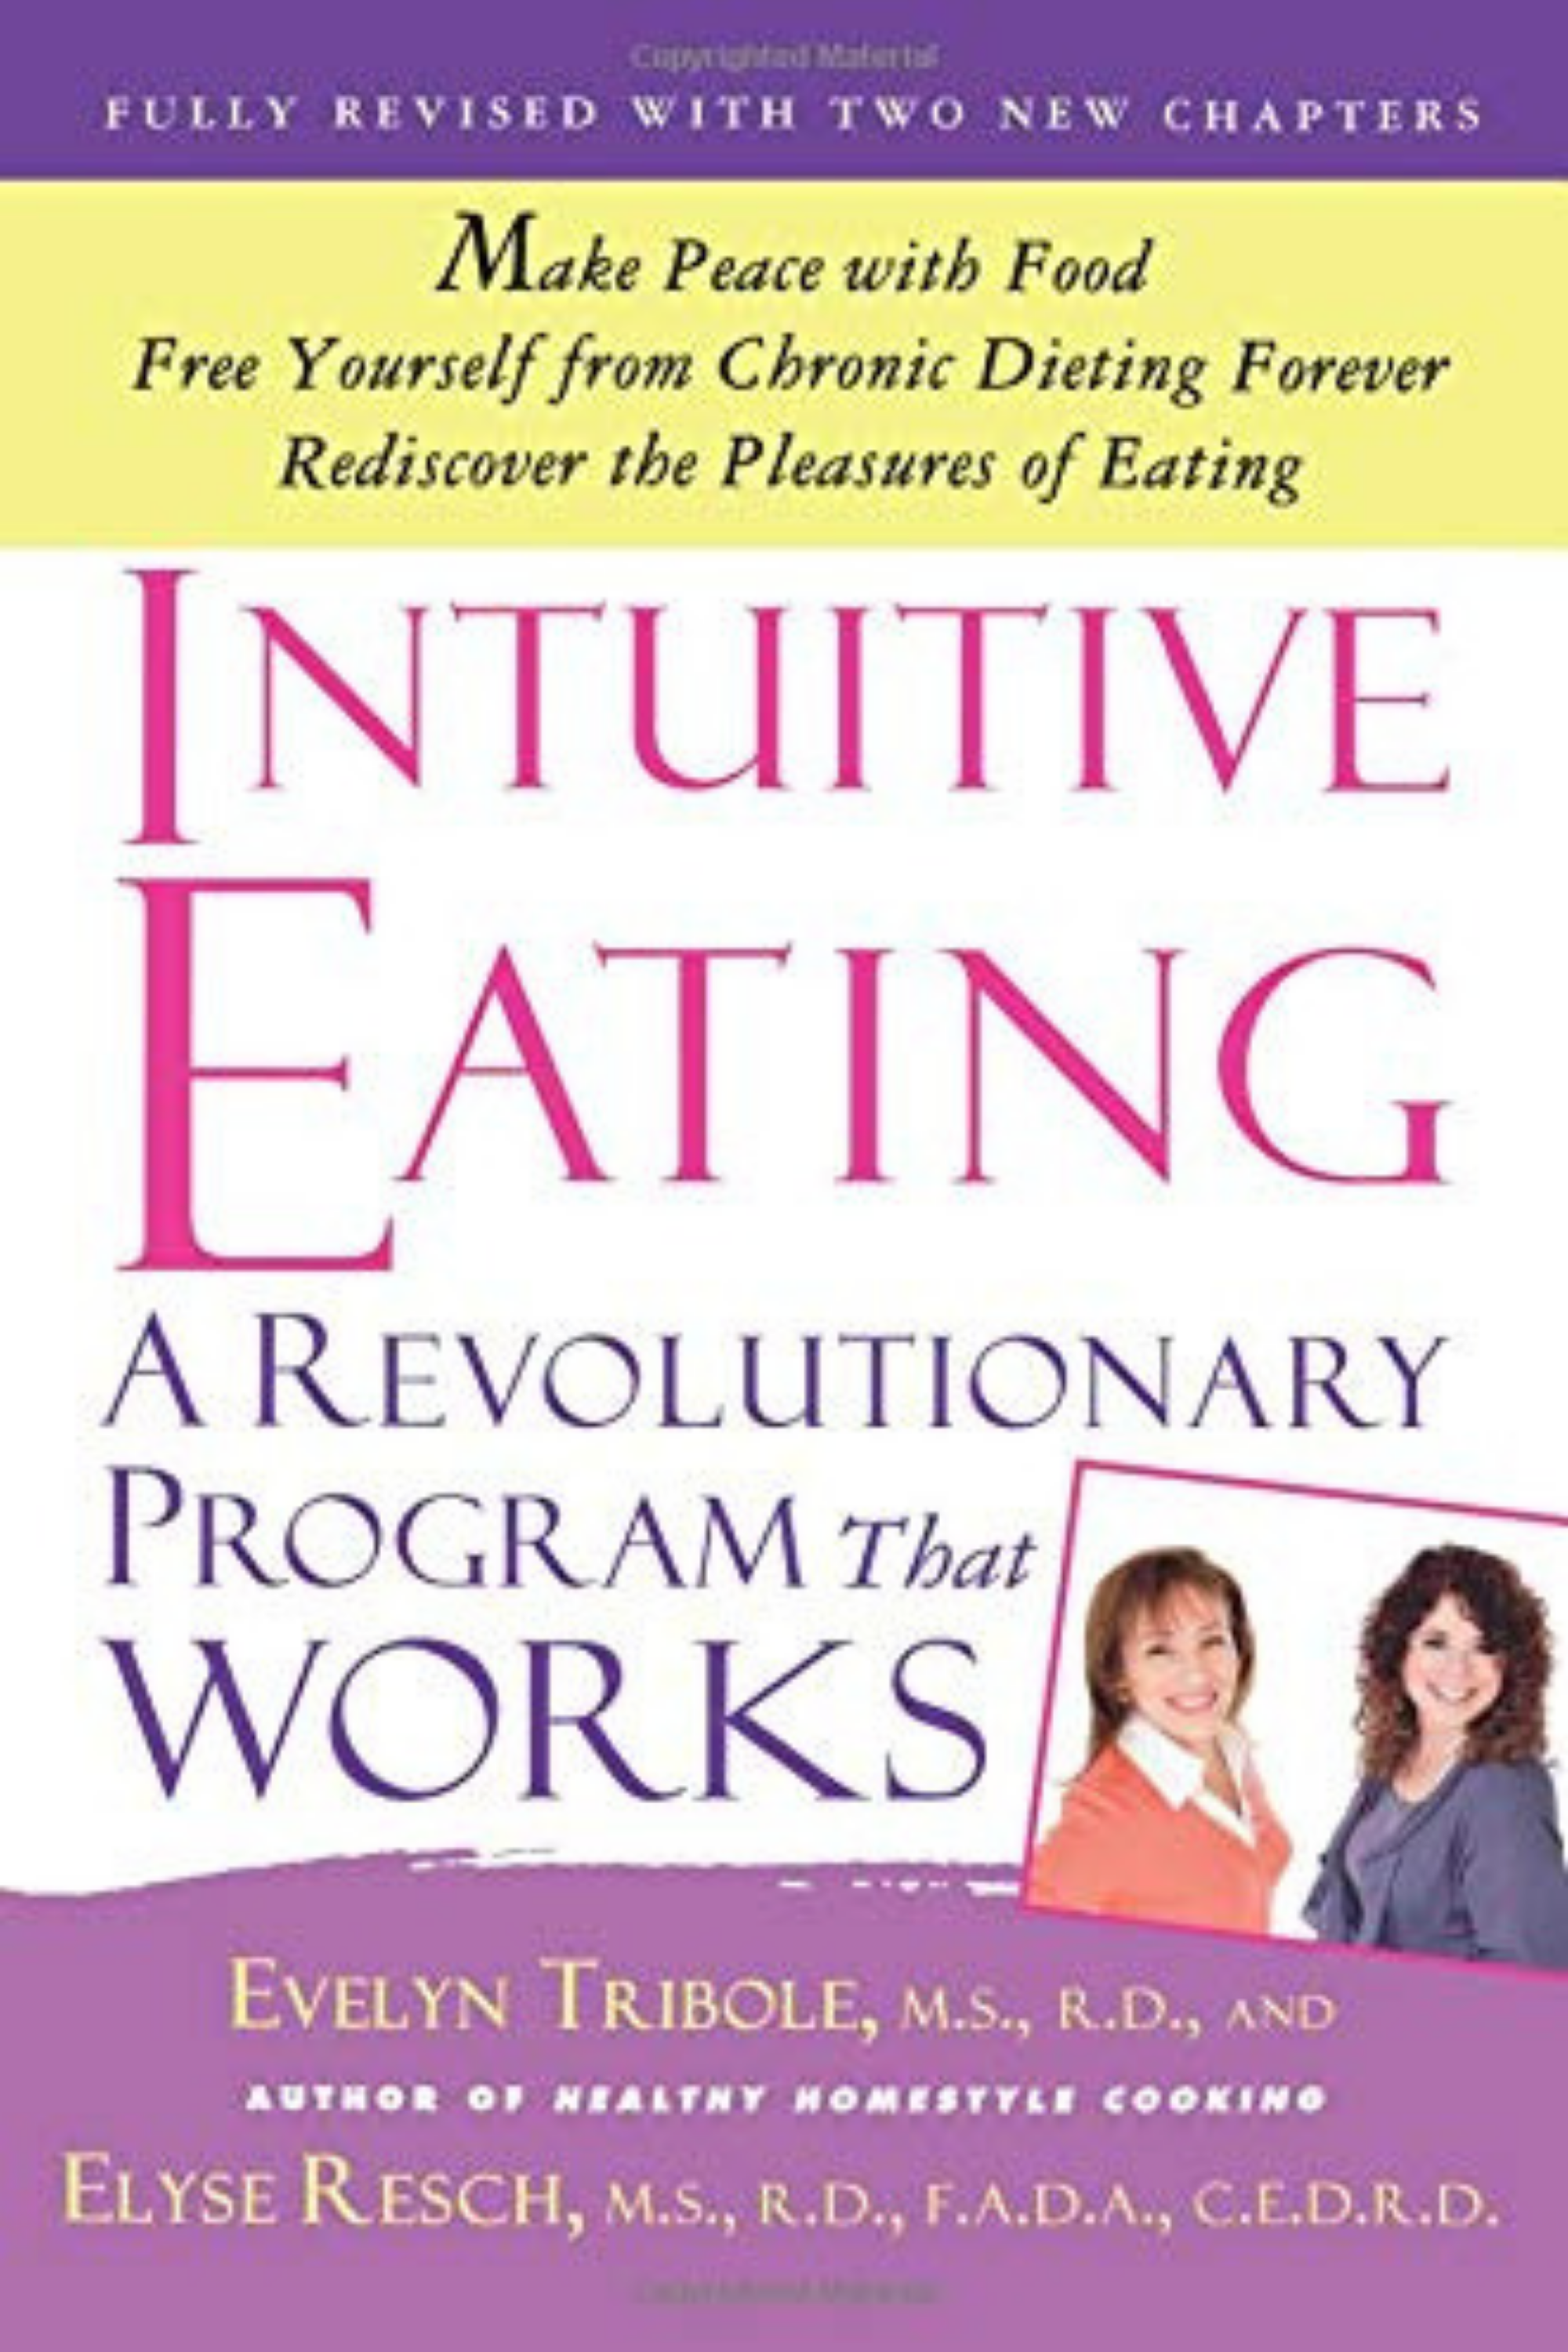 Intuitive Eating Evelyn Tribole Courtney Elmer.png